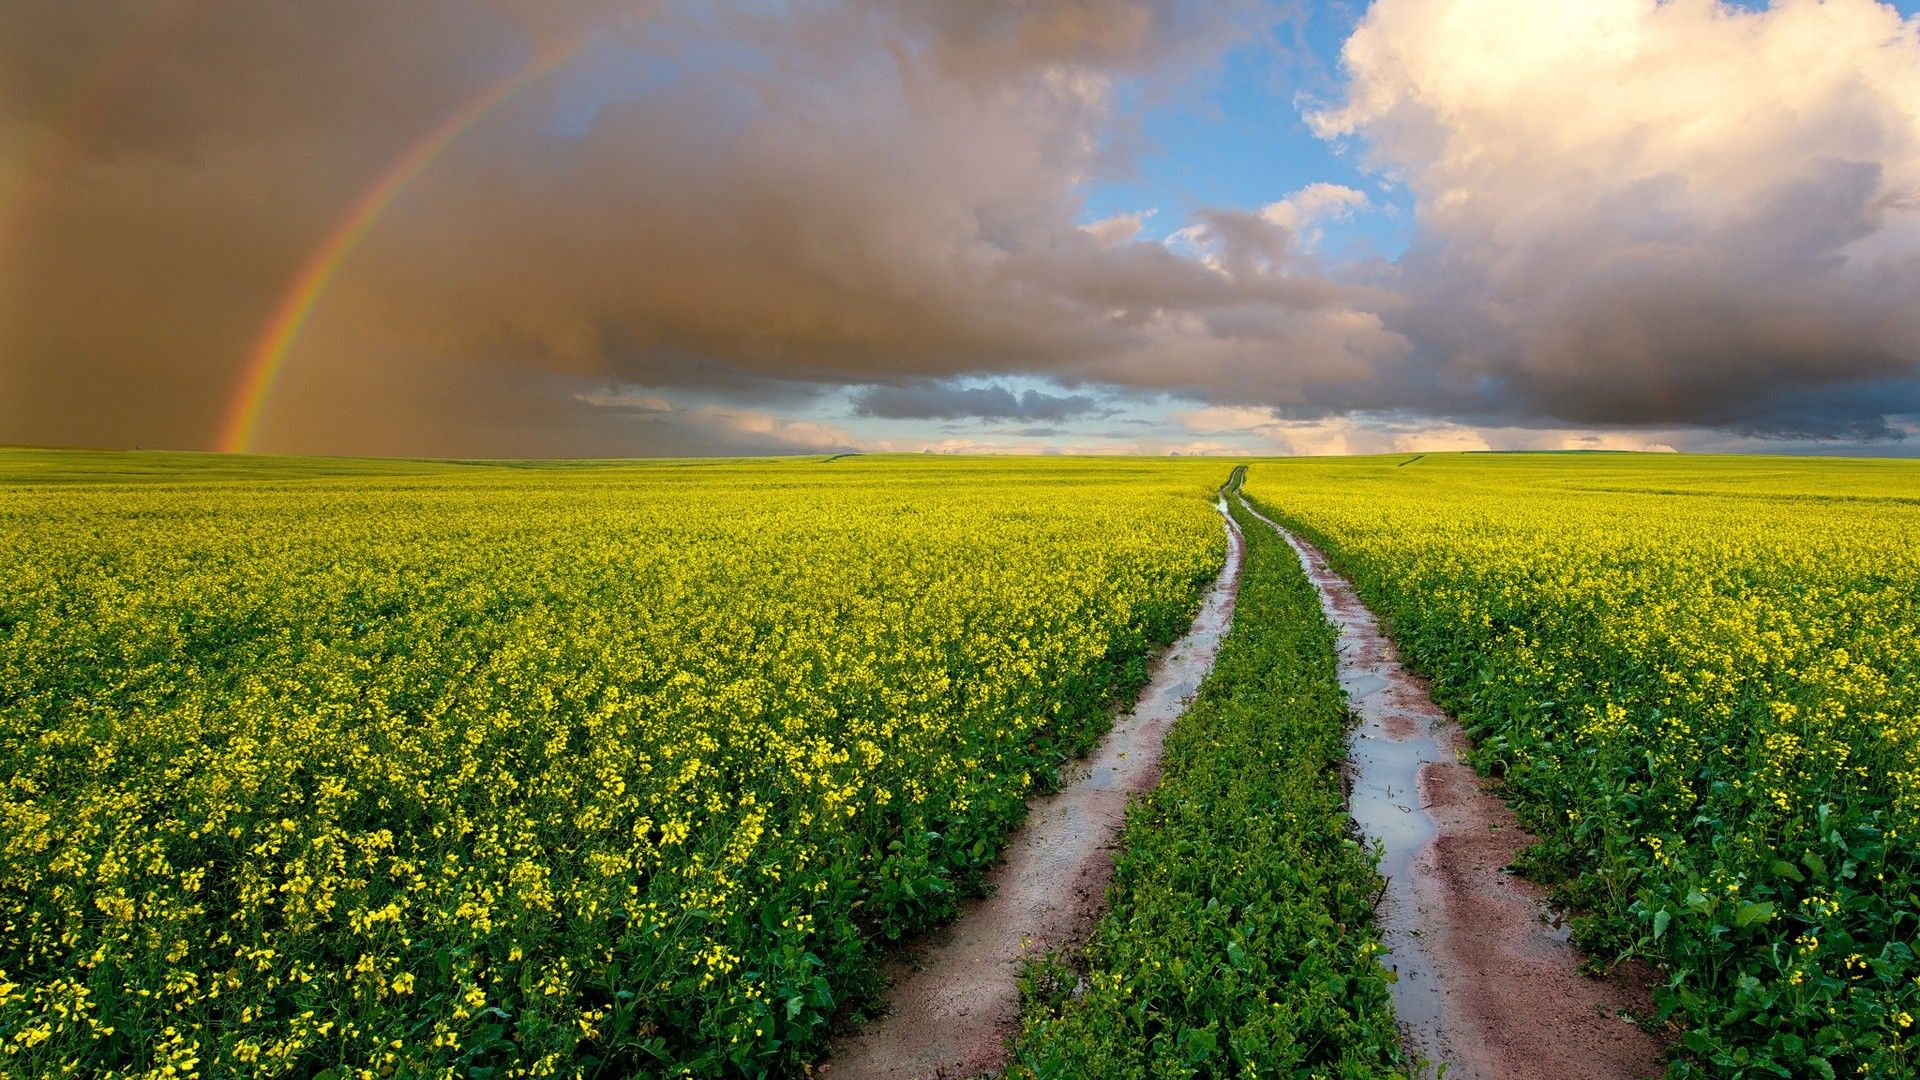 Wallpapers Clouds Landscapes Nature Flowers Wet Fields Rainbows South Africa Sky Natural Scenery Natural Scenery Canola Field Beautiful Nature